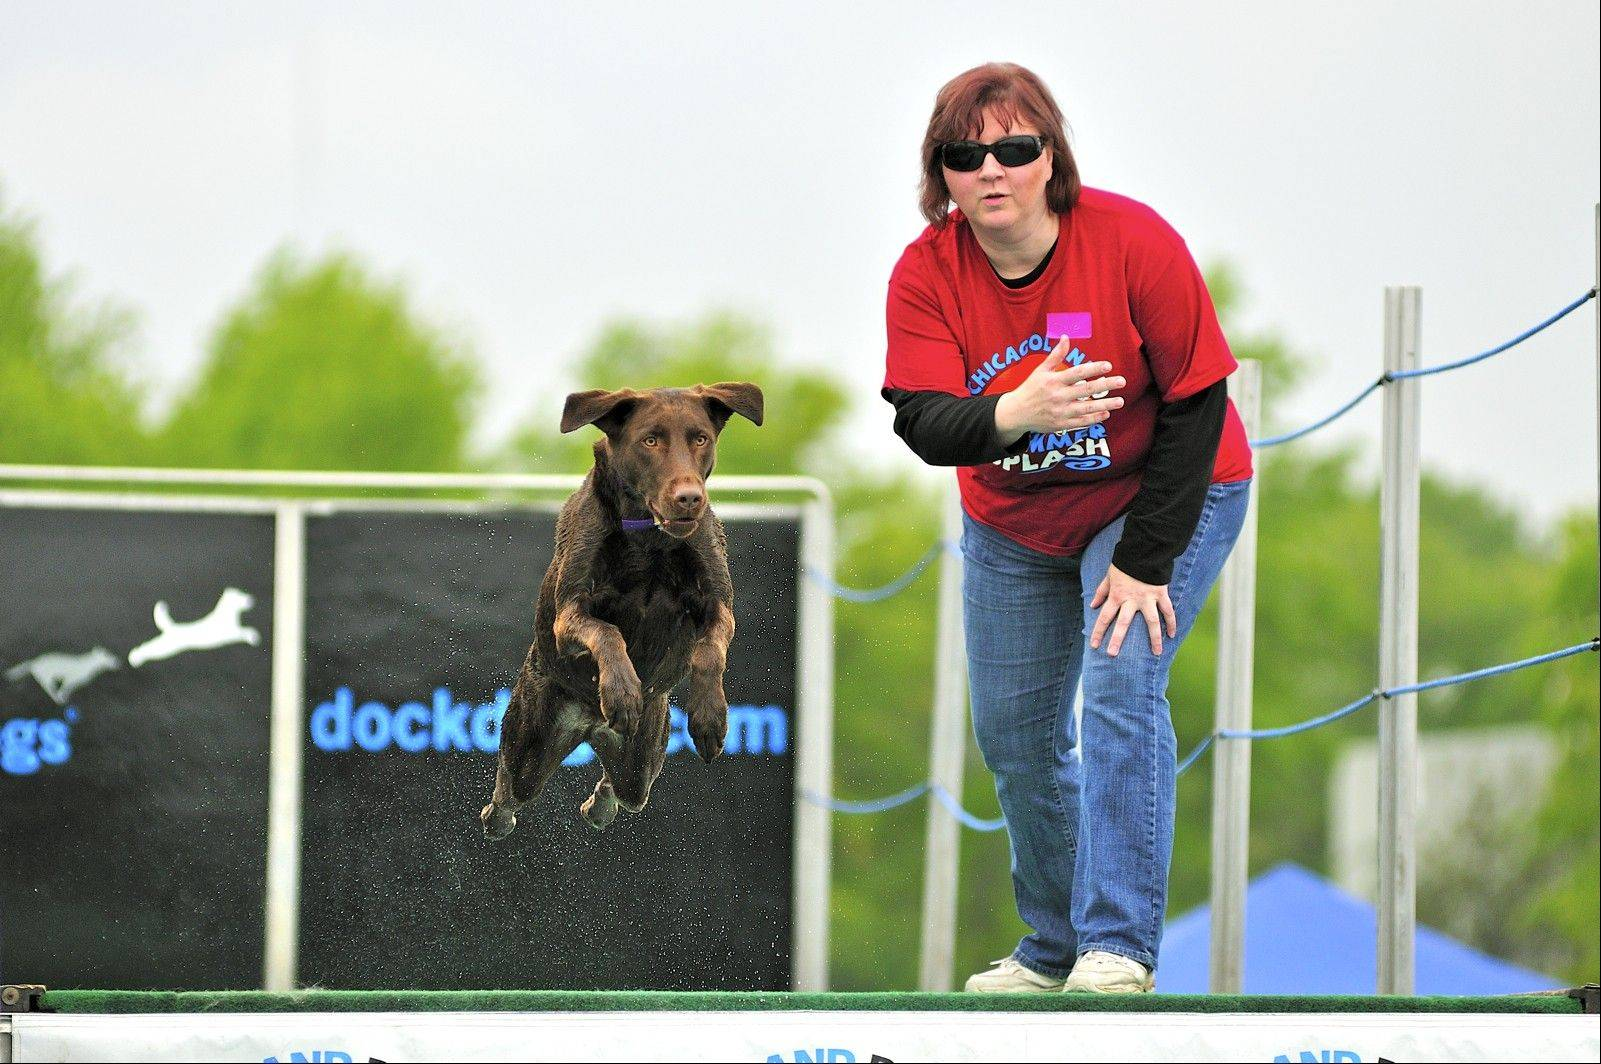 The Dog Days of Summer in downtown Libertyville July 7-10 will feature more than 100 nationally ranked top jumping dogs competing for prizes and rankings, as well as a variety of canine focused competitions, promotions and activities.